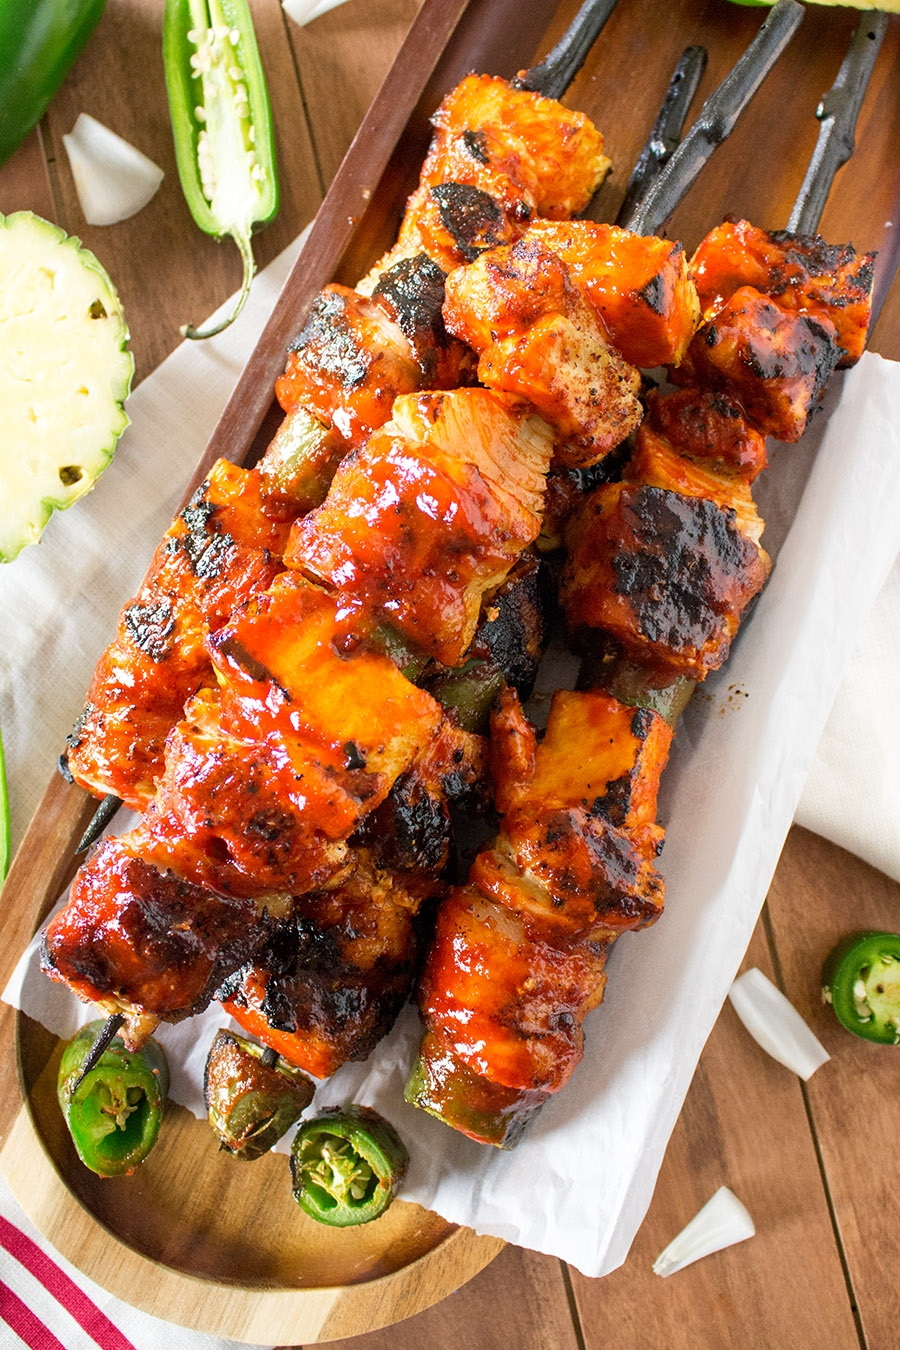 Chicken and Pork BBQ Skewers with Honey-Sriracha Glaze